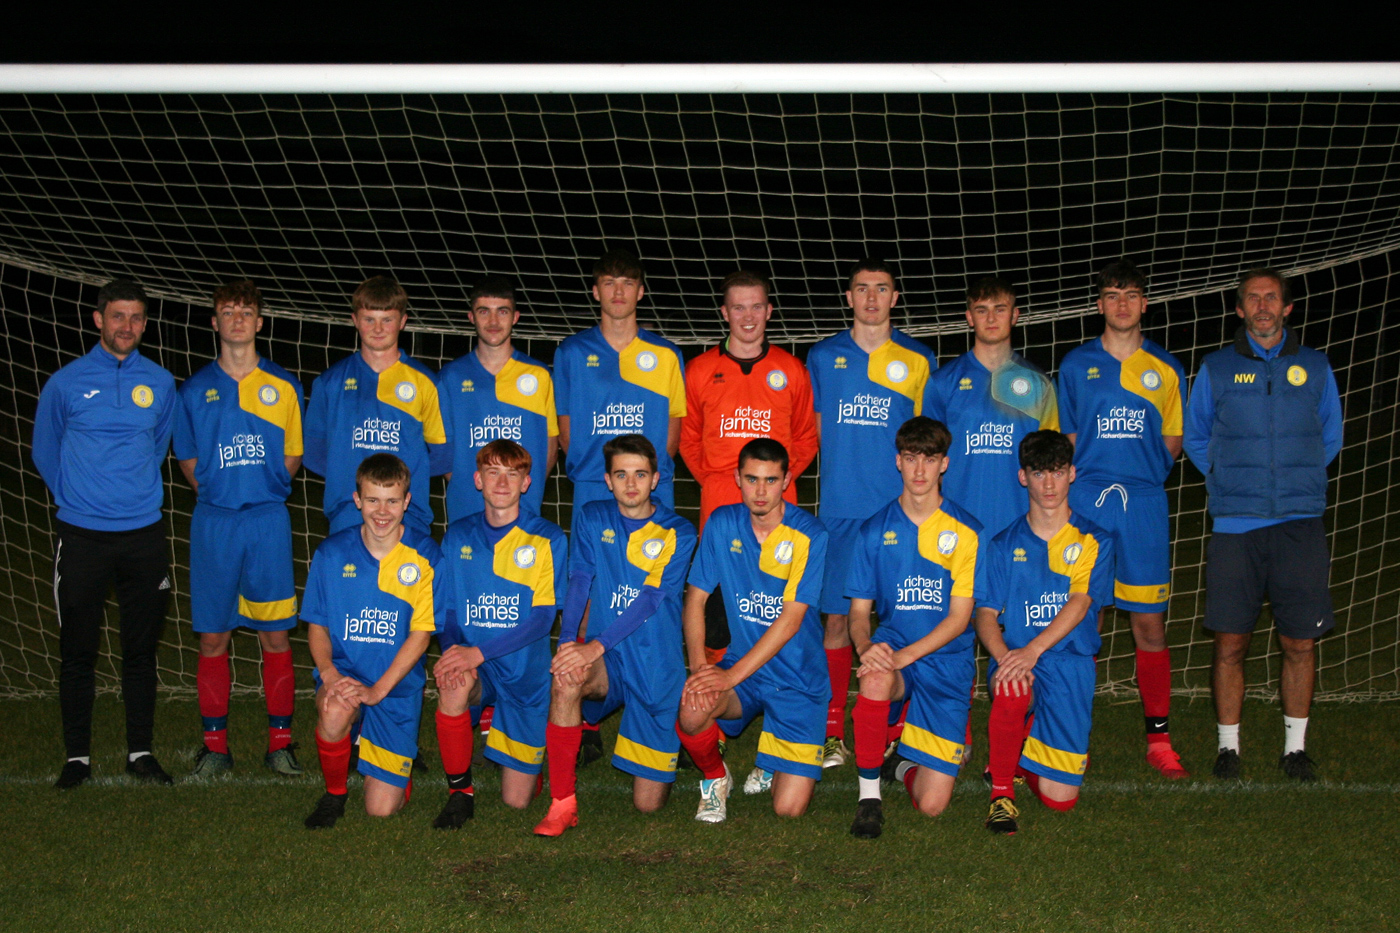 Under 18 Floodlit Team Photo